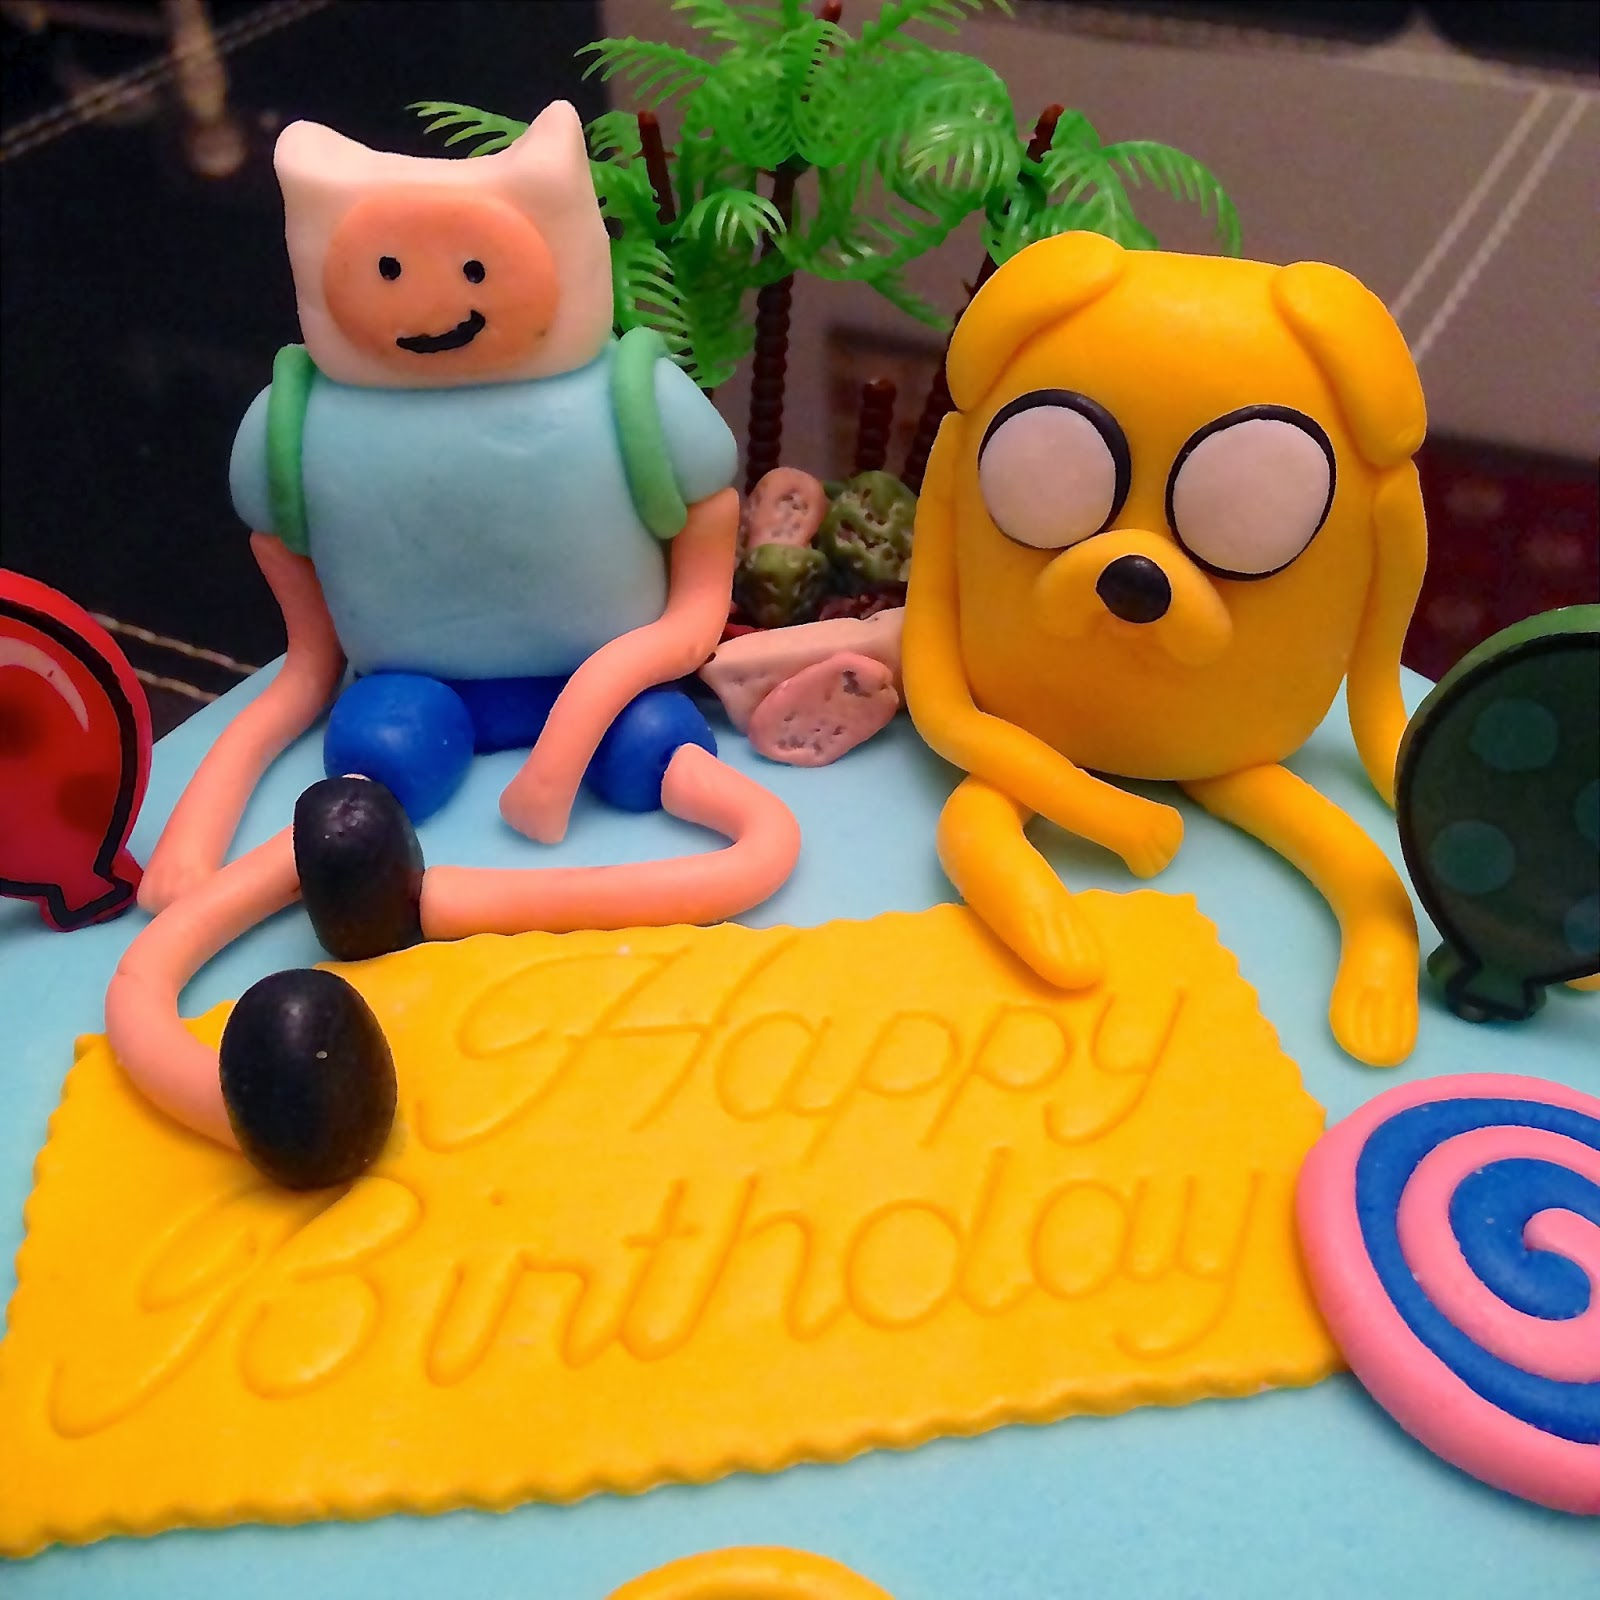 Cartoon Character Birthday Cake